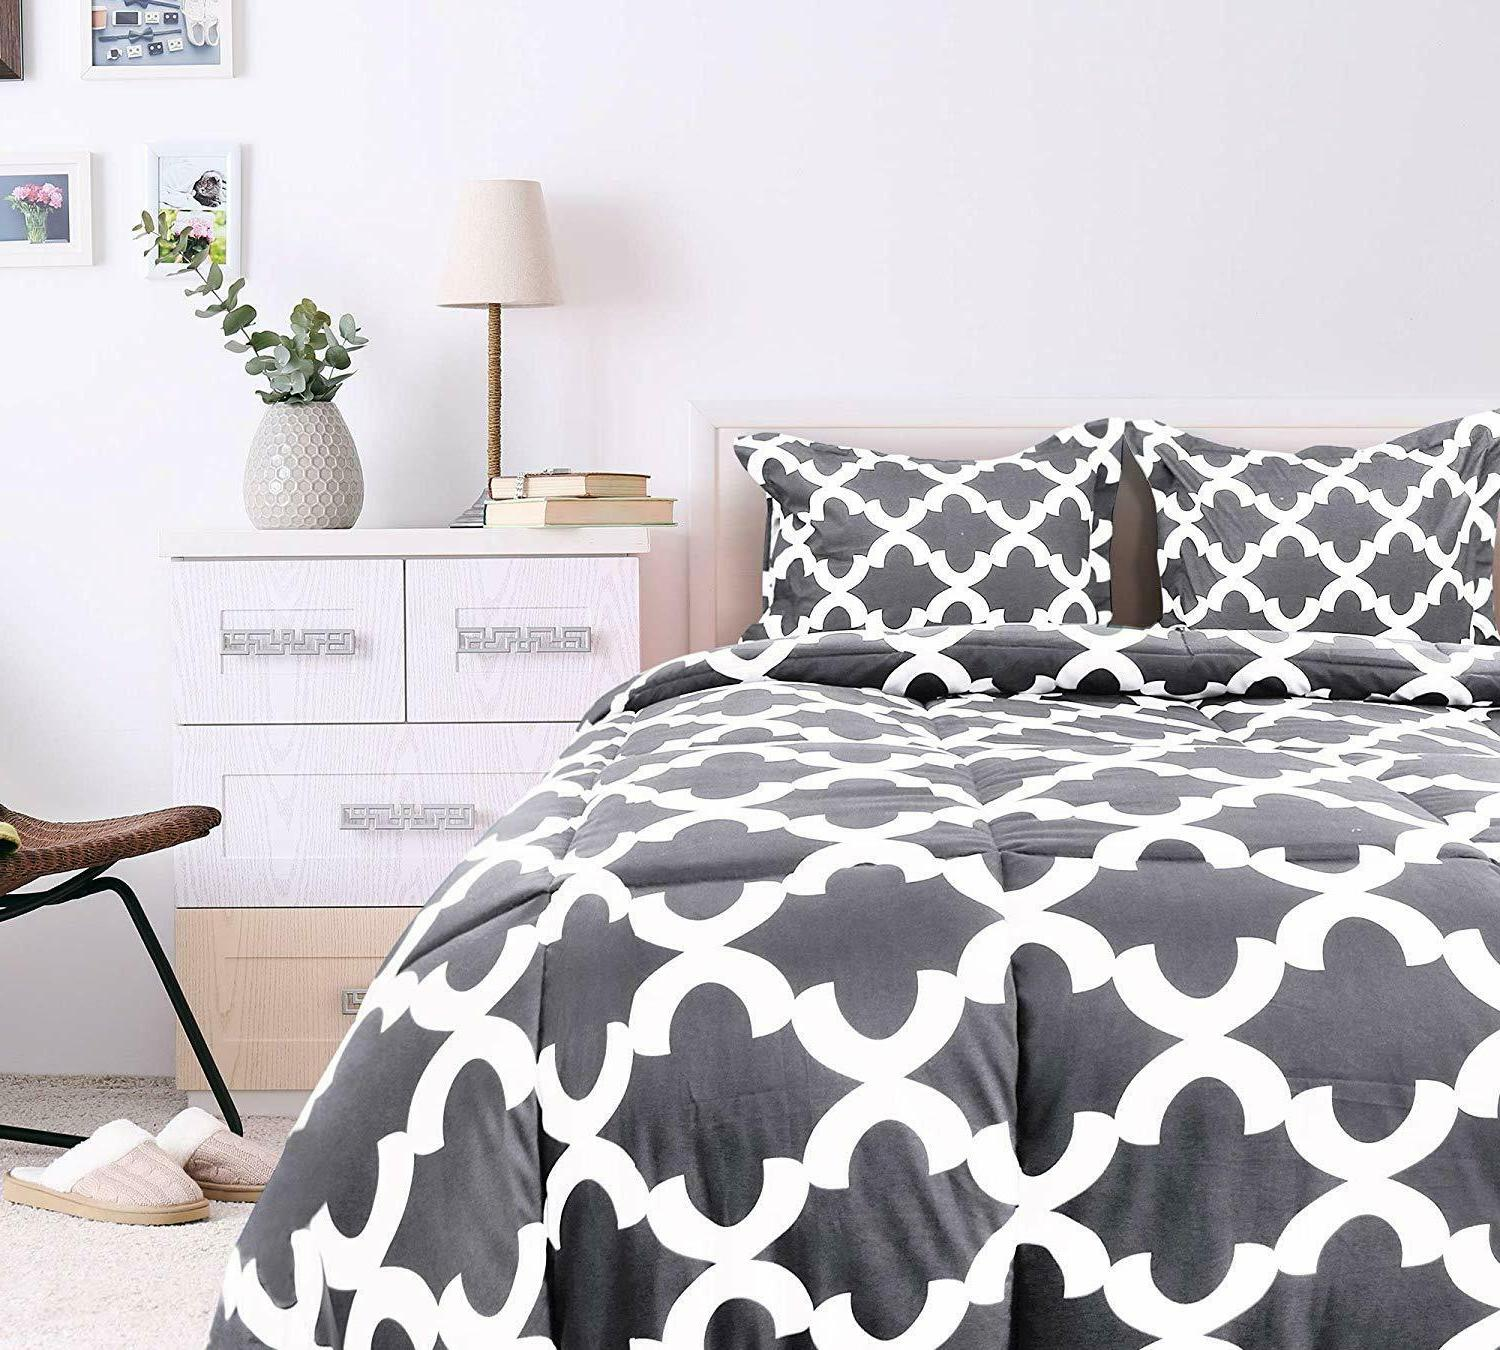 Printed Set 2 Shams Microfiber by Utopia Bedding